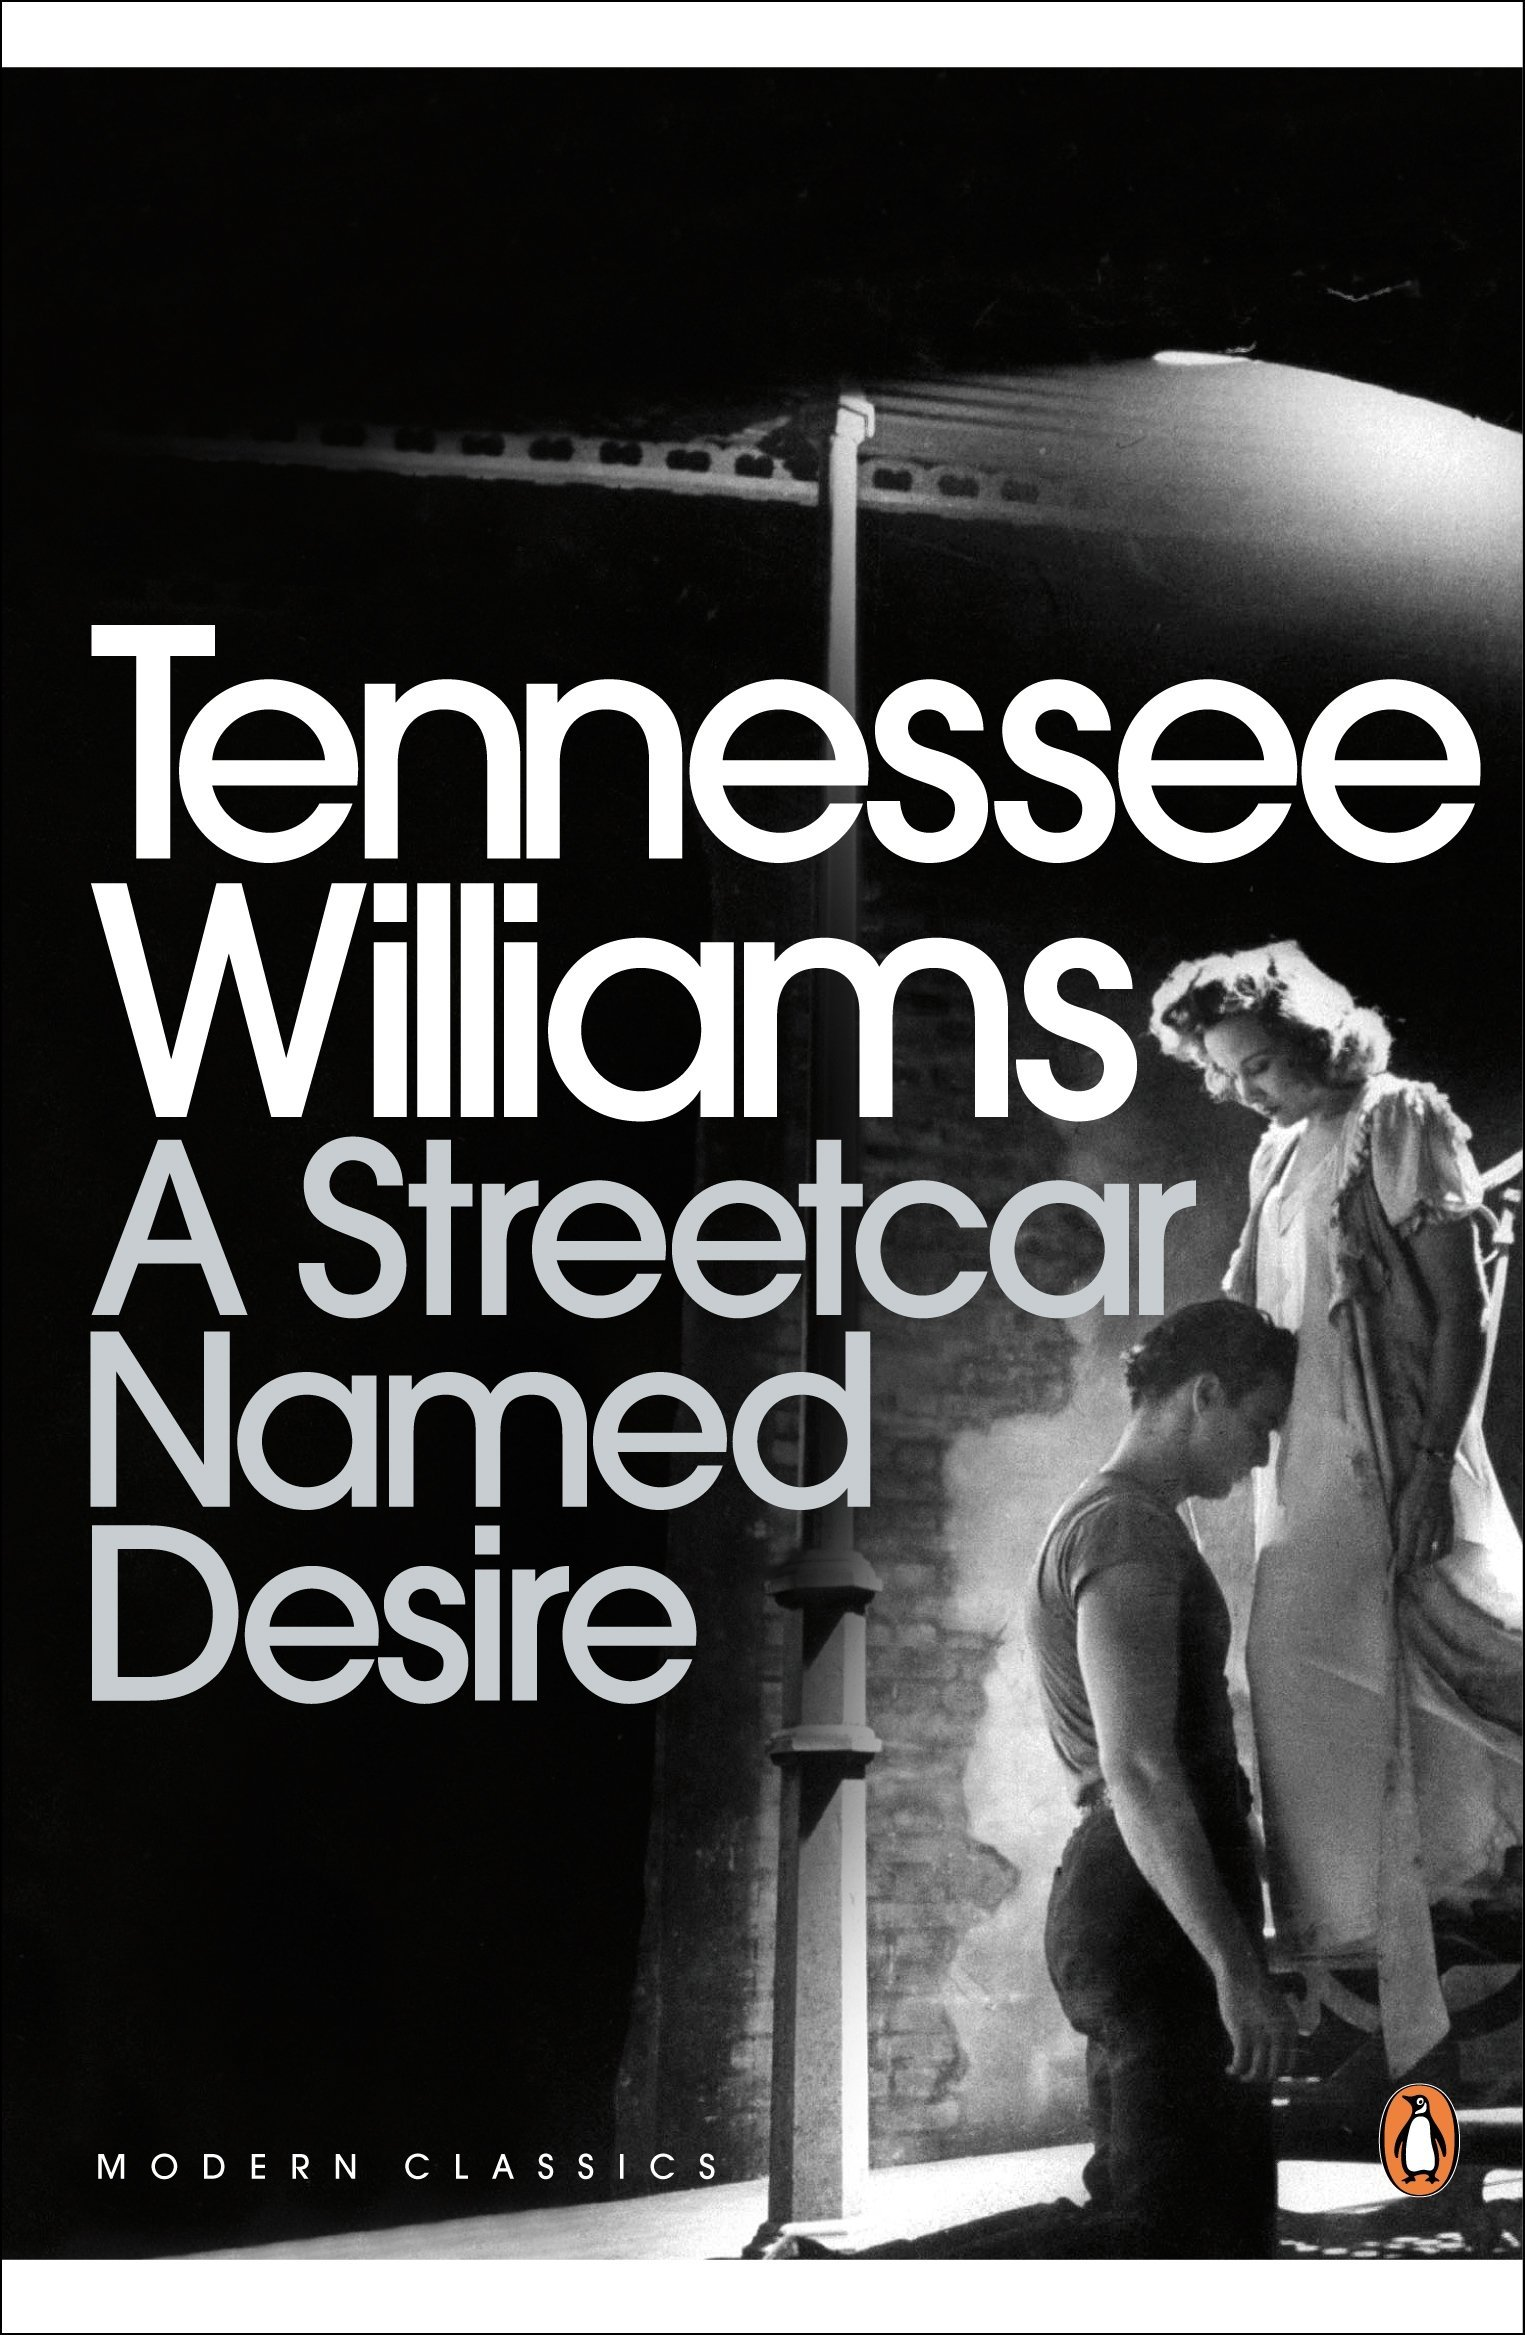 a streetcar named desire social commentary This article addresses some central themes in tennessee williams' seminal play  a streetcar named desire these include madness and.